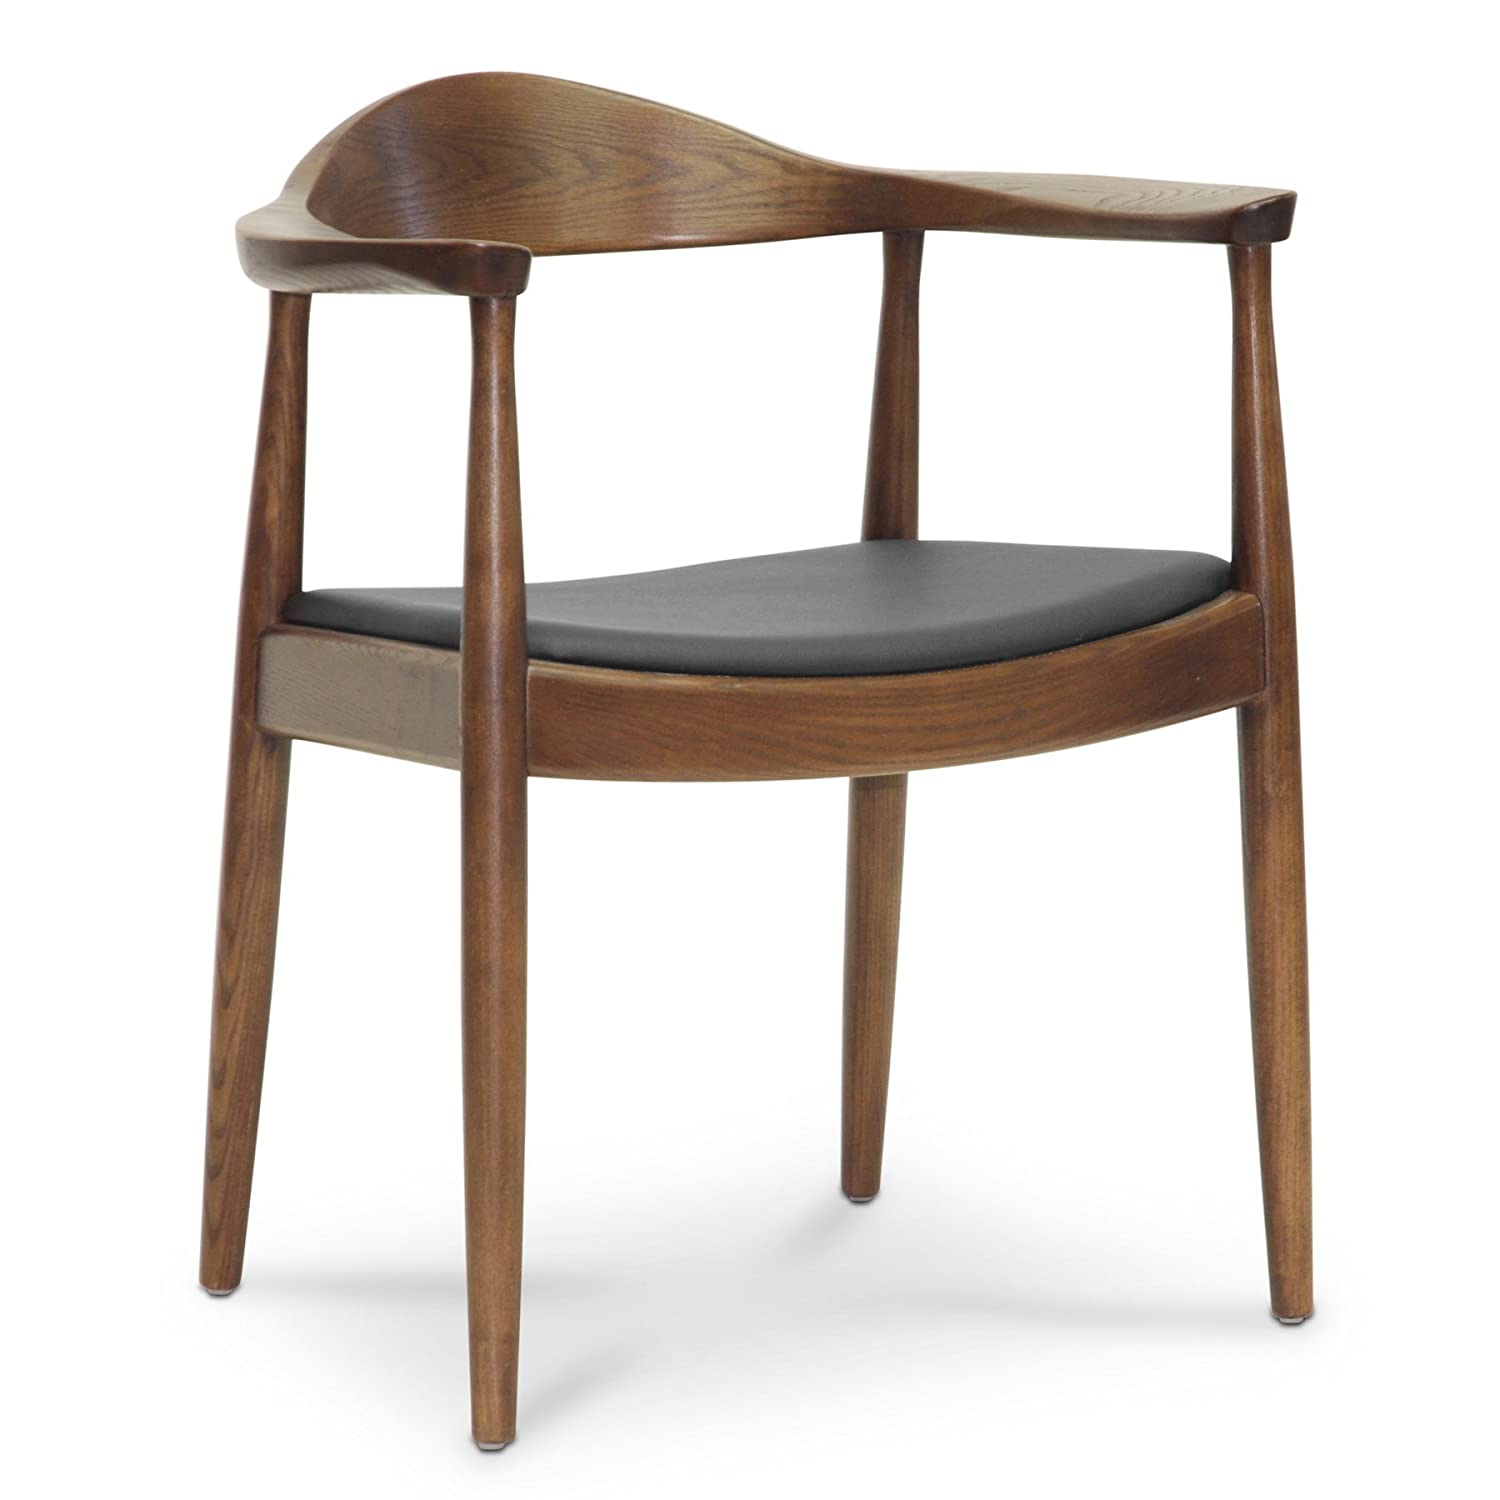 Amazing Amazon.com   Baxton Studio Embick Mid Century Modern Dining Chair   Chairs